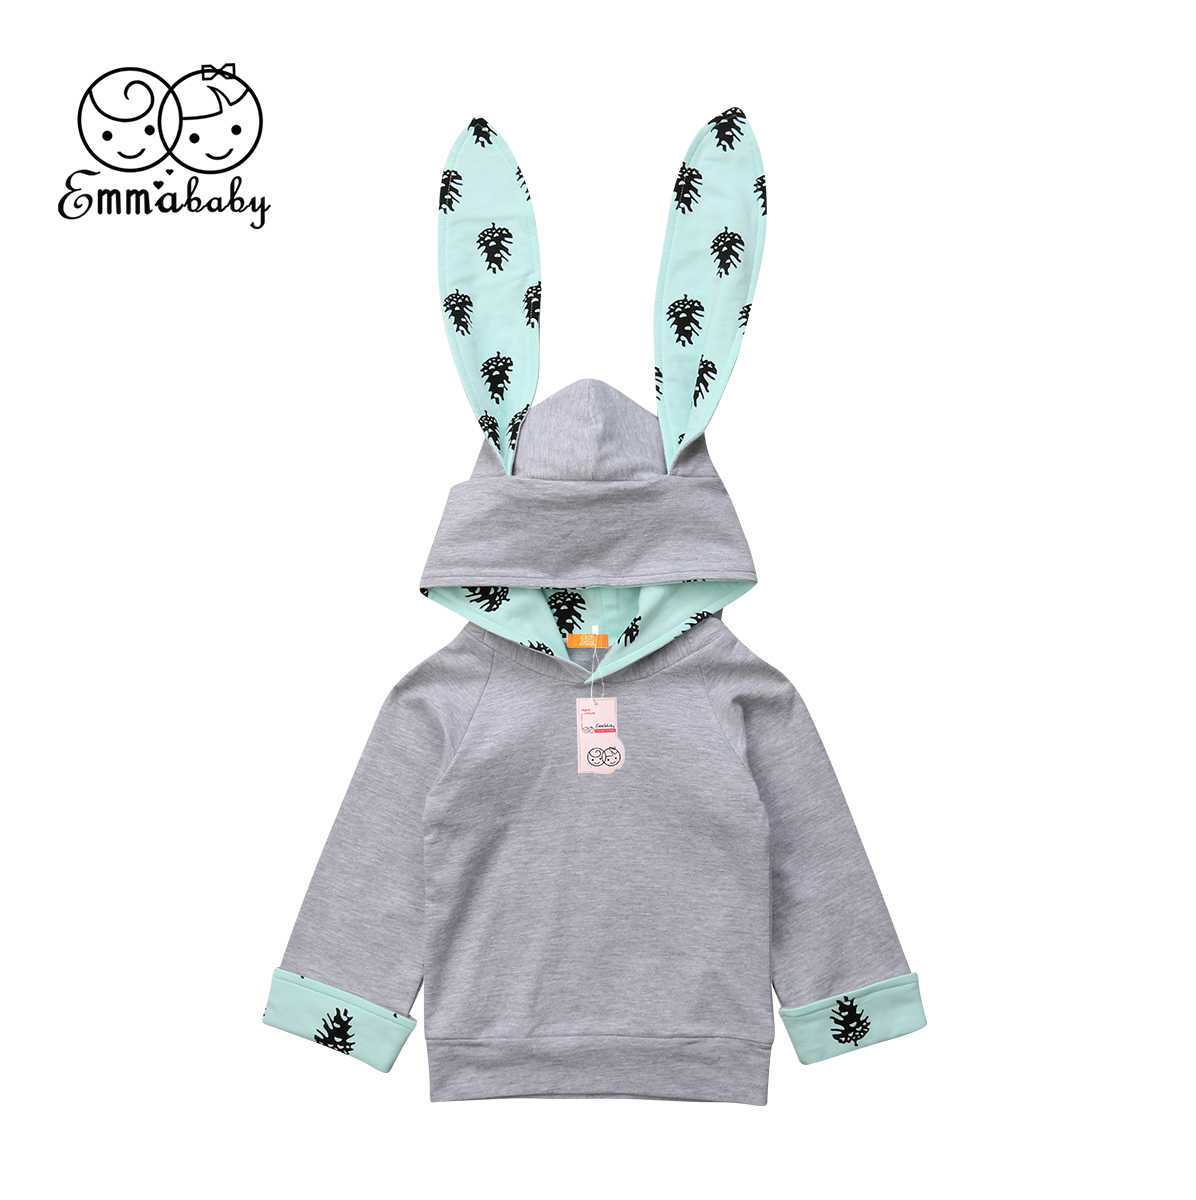 bf77f1f26 Toddler Baby Boy Girl Winter Jacket Rabbit Hoodies Outwear Snowsuit Coat  Clothes